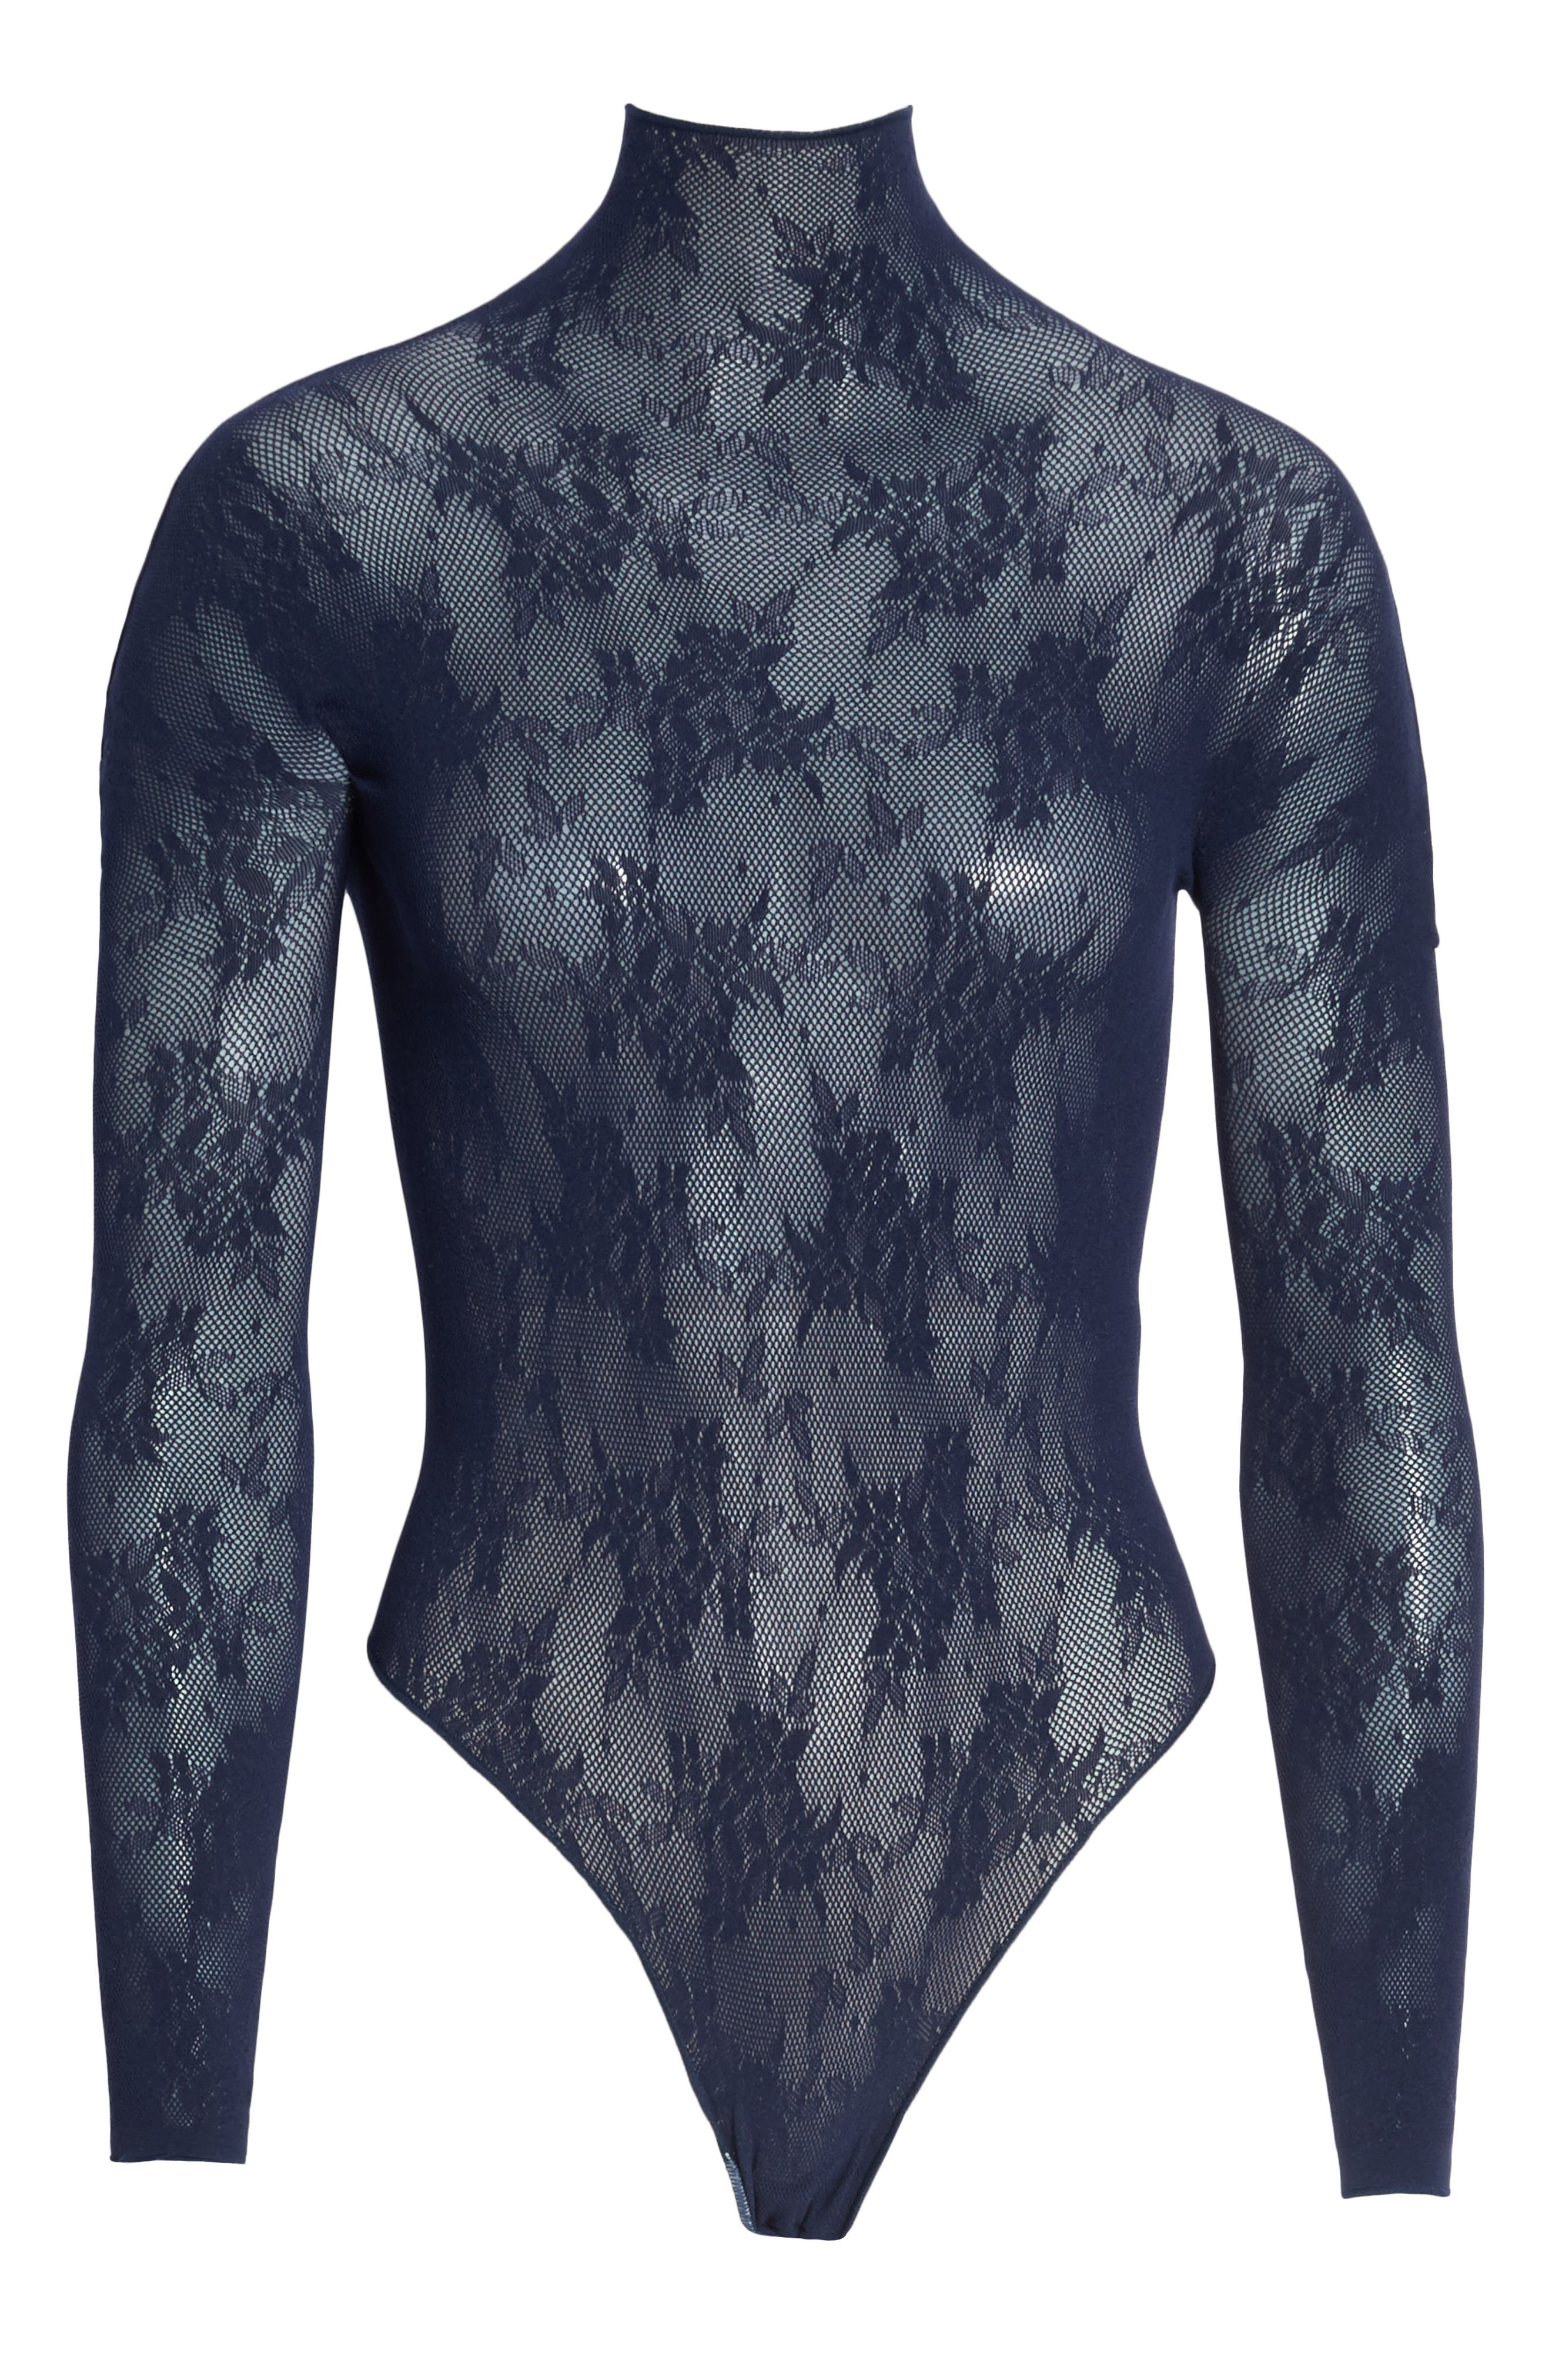 x Atlantic-Pacific Lace Thong Bodysuit,                             Alternate thumbnail 6, color,                             NAVY BLAZER